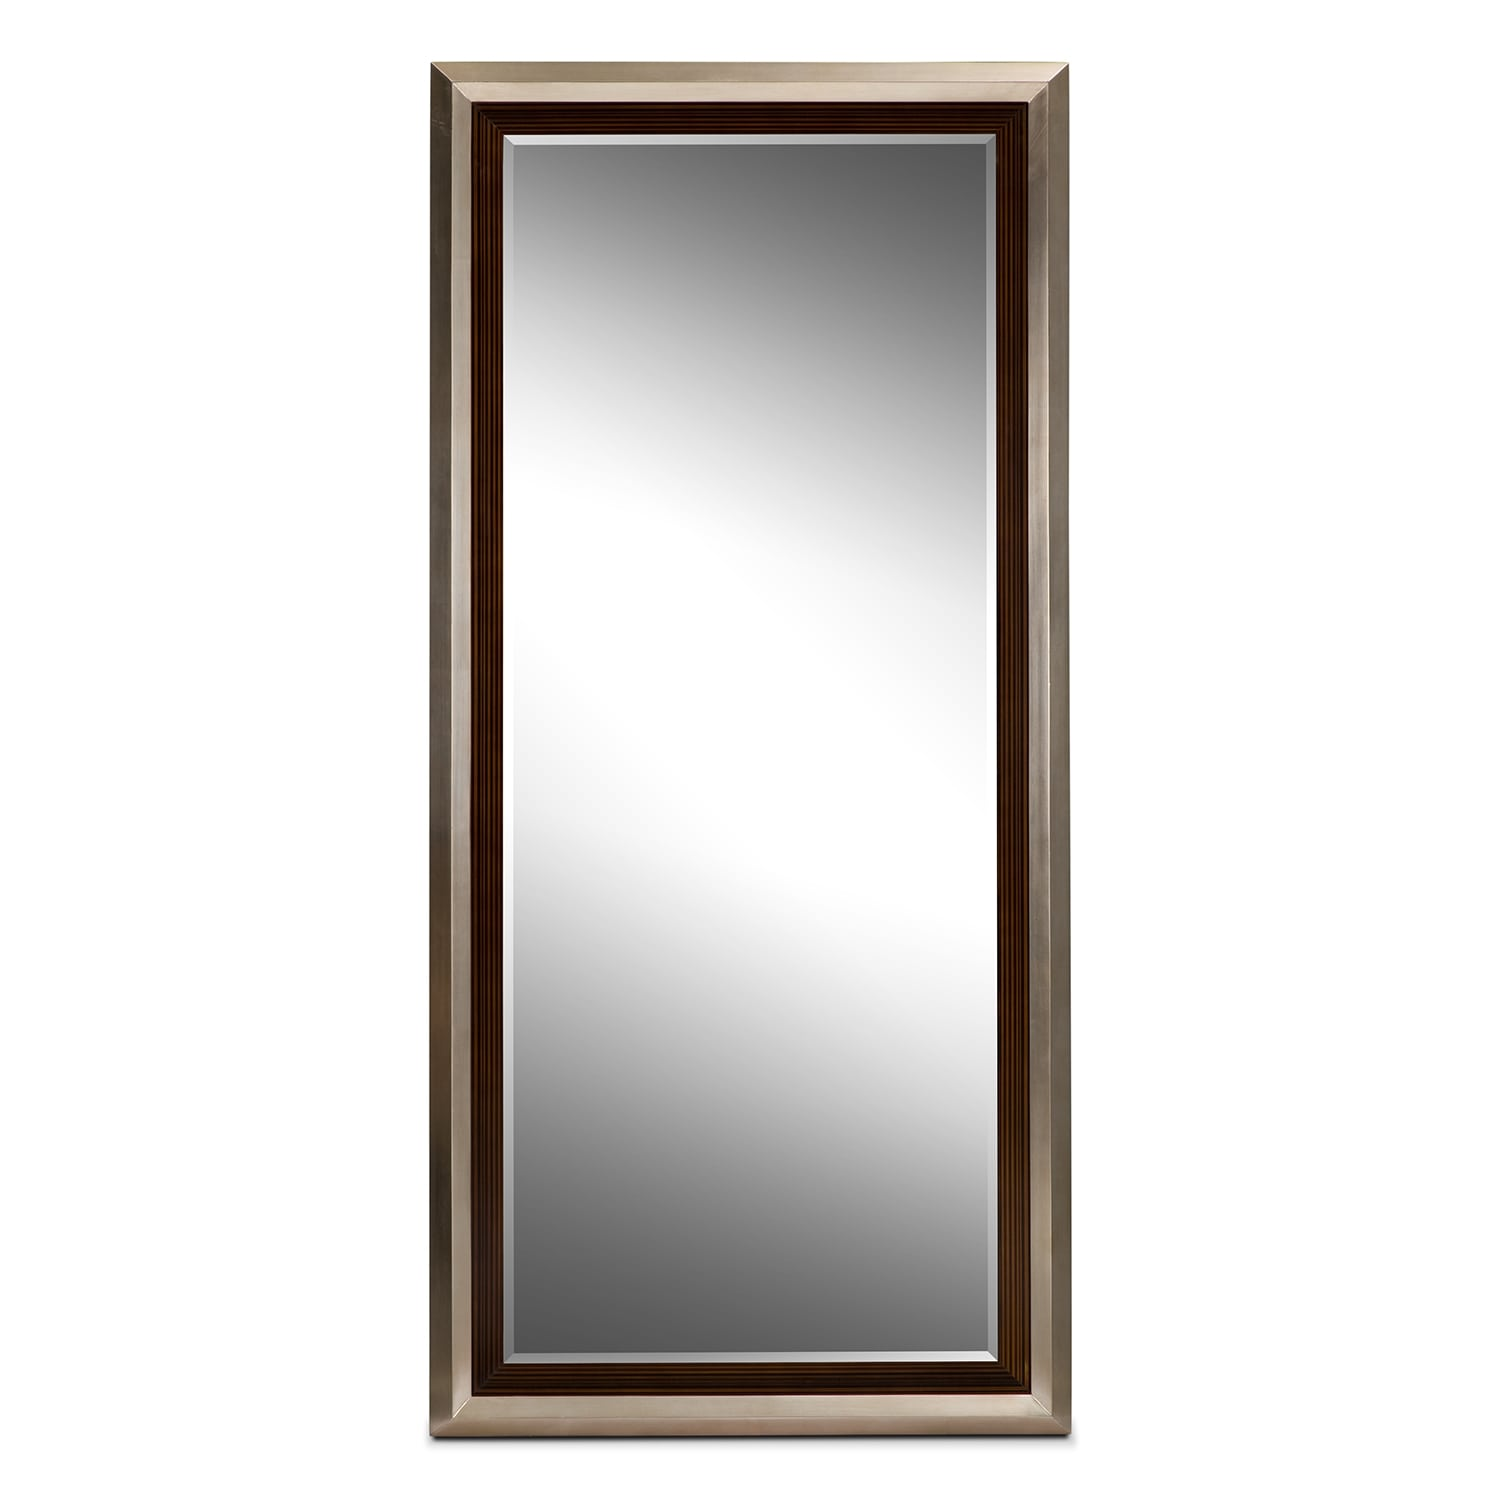 Home Accessories - Jensen Floor Mirror - Silver and Walnut